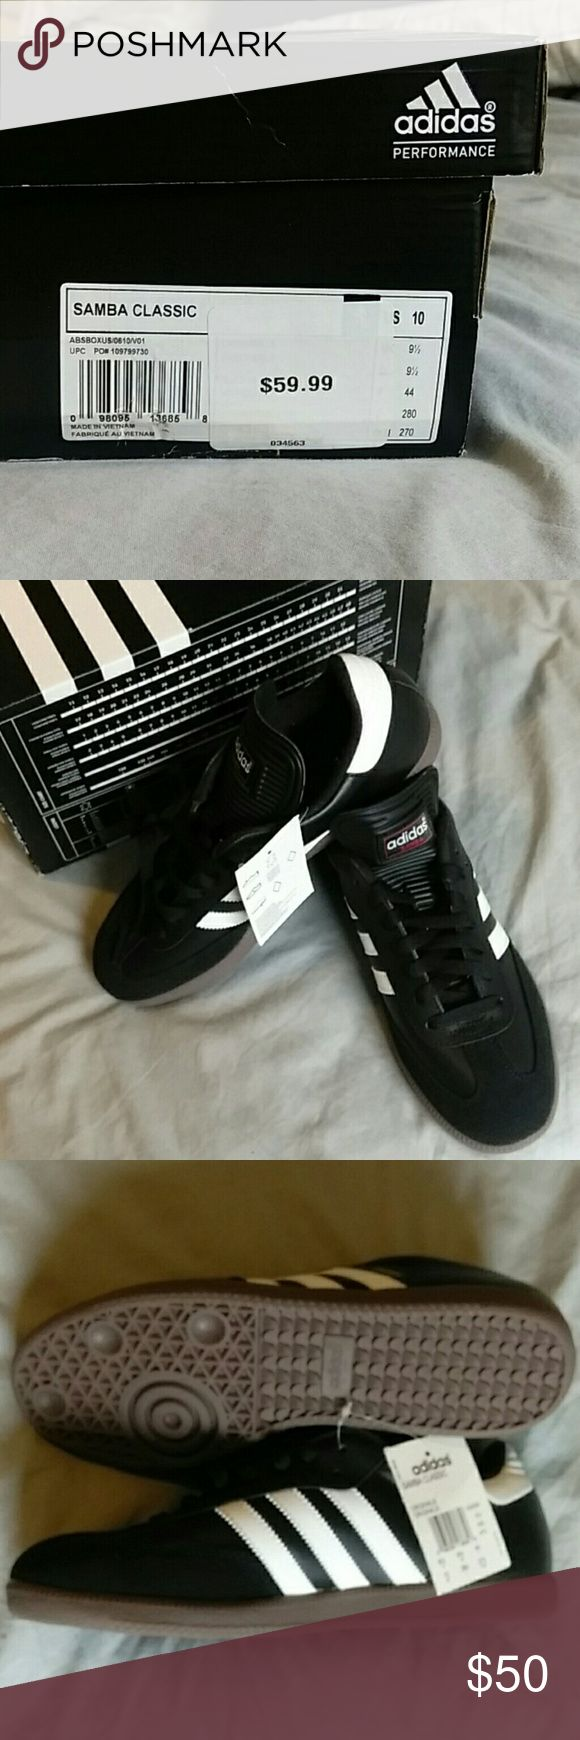 Adidas Samba Classic Cool pair of never-worn Adidas Samba sneaks. Fresh black and white leather. Style up or down for your hot date or indoor football match. Adidas Shoes Athletic Shoes